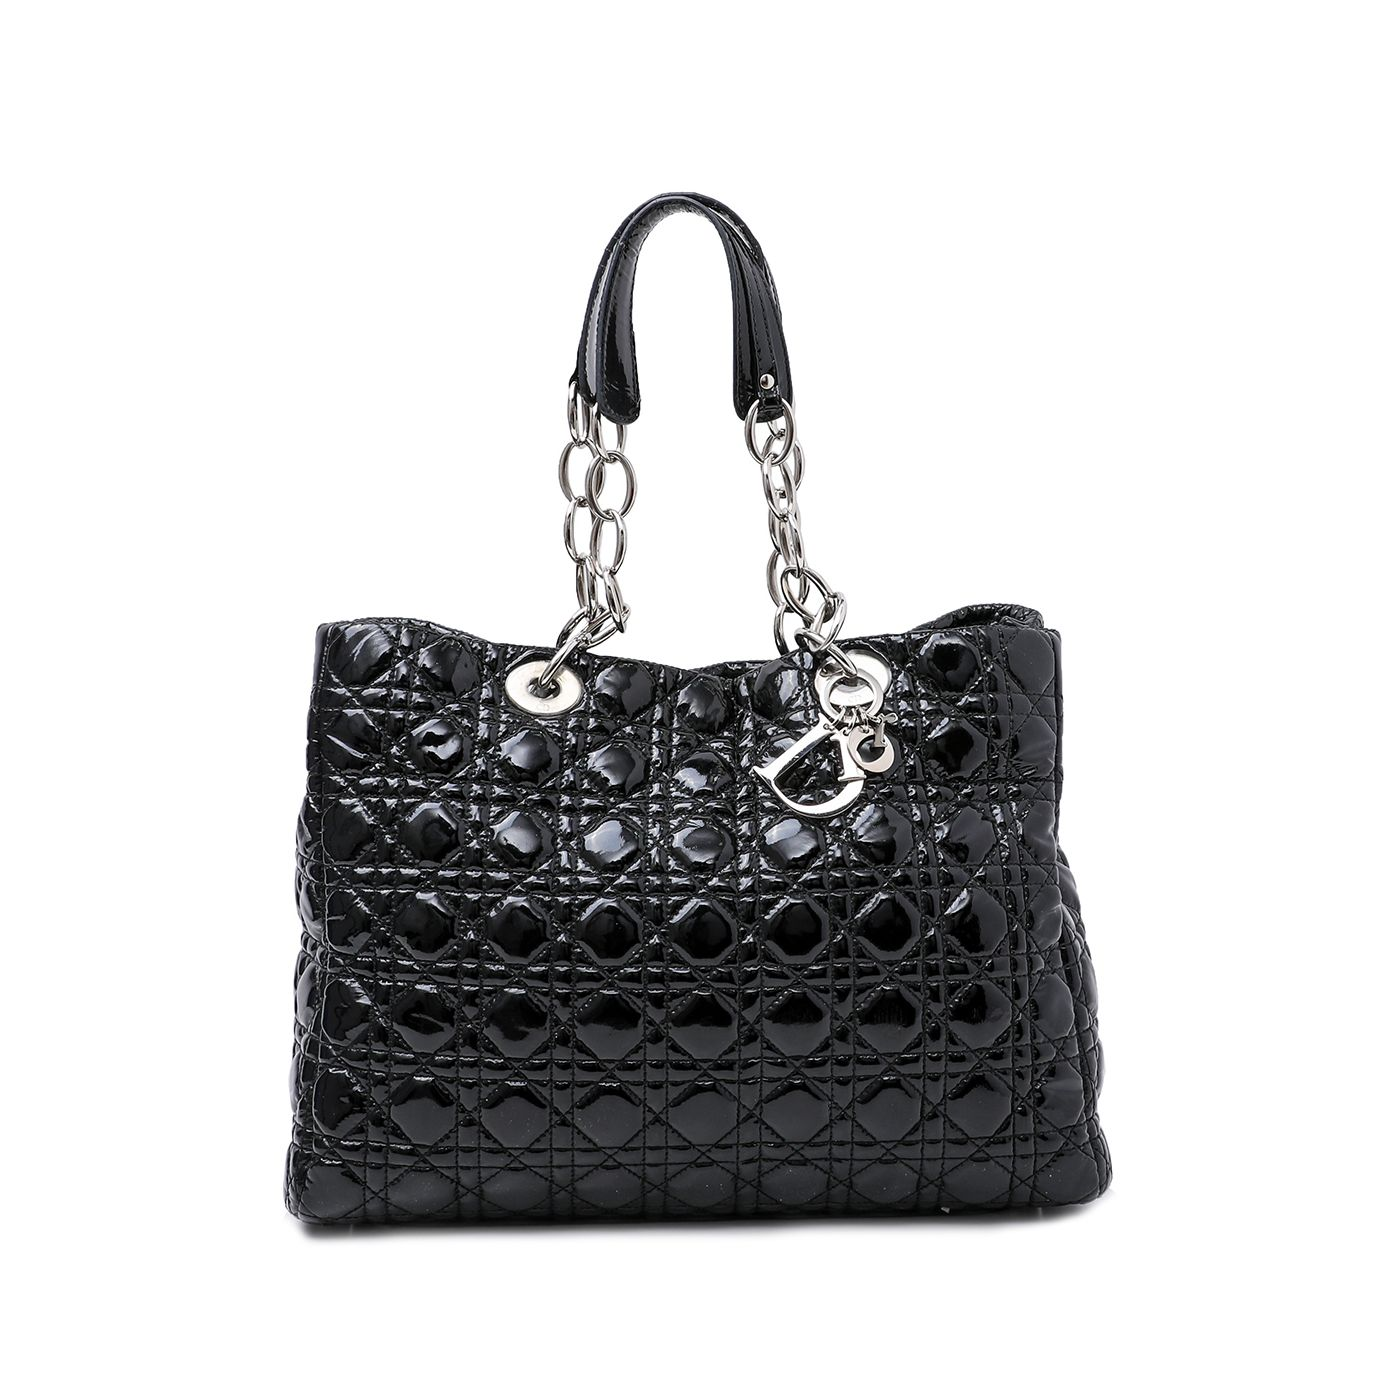 Christian Dior Black Soft Tote Cannage Bag